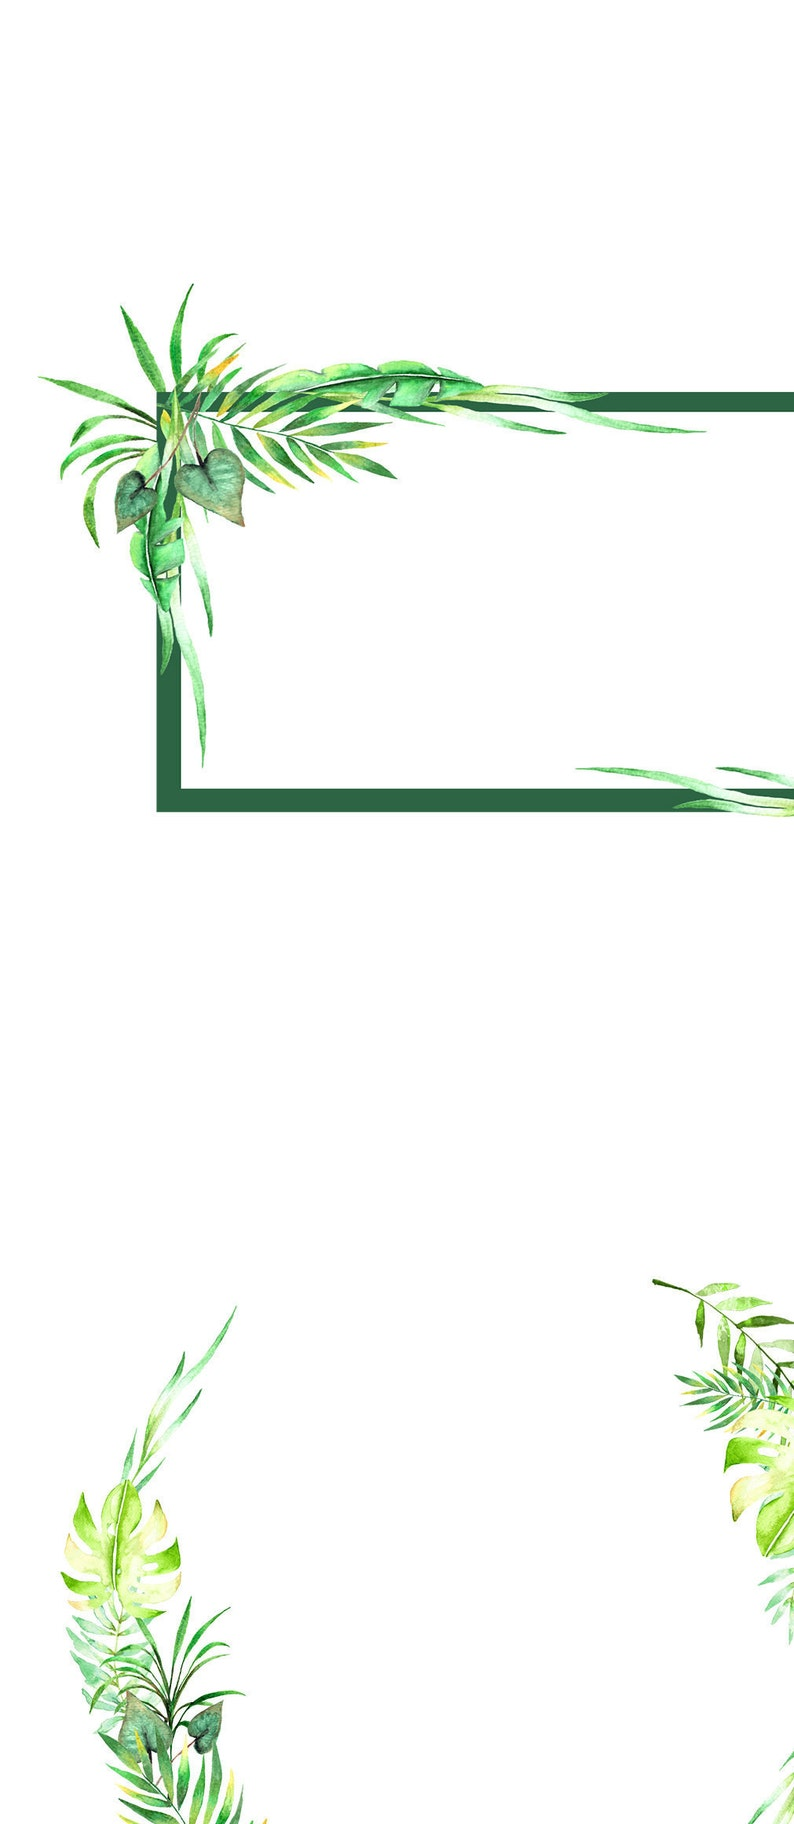 watercolor branches tropic illustrations foliage floral elements leaf diy clipart green leaf tropical wreath tropical leaves clipart